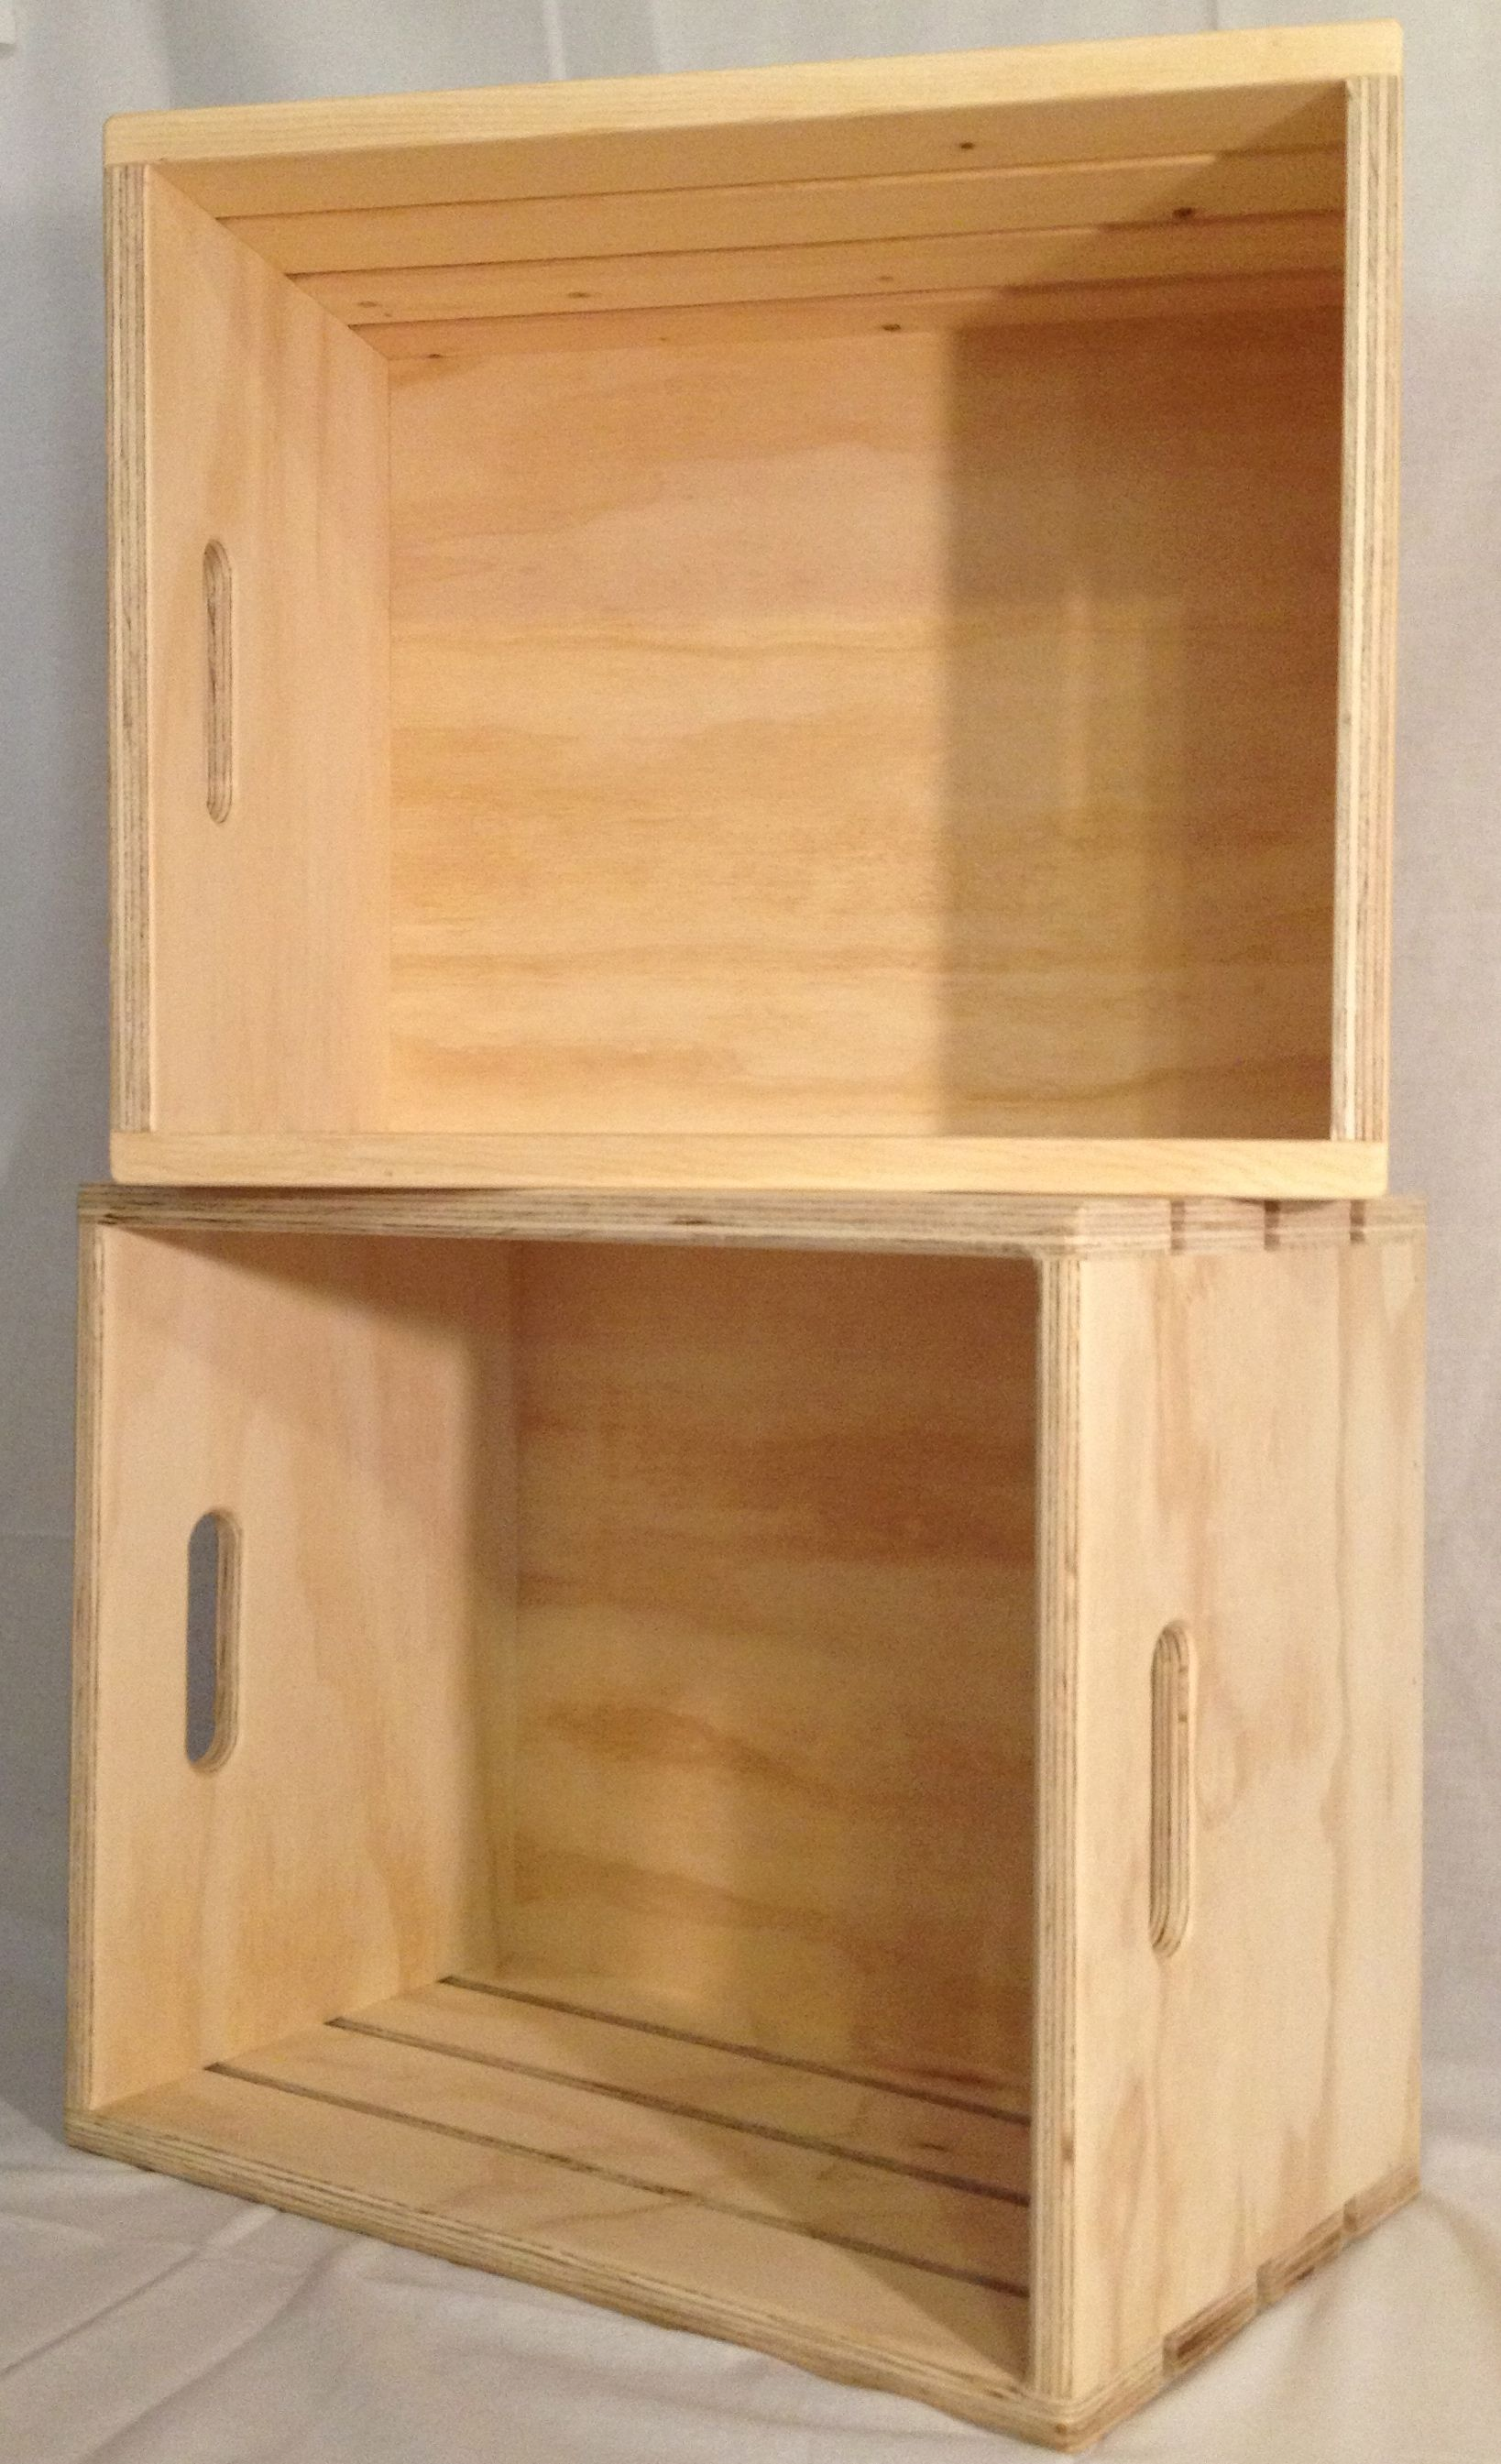 Wood Retail Display Crates, Natural Or Stained Jbrothersandcompanycom